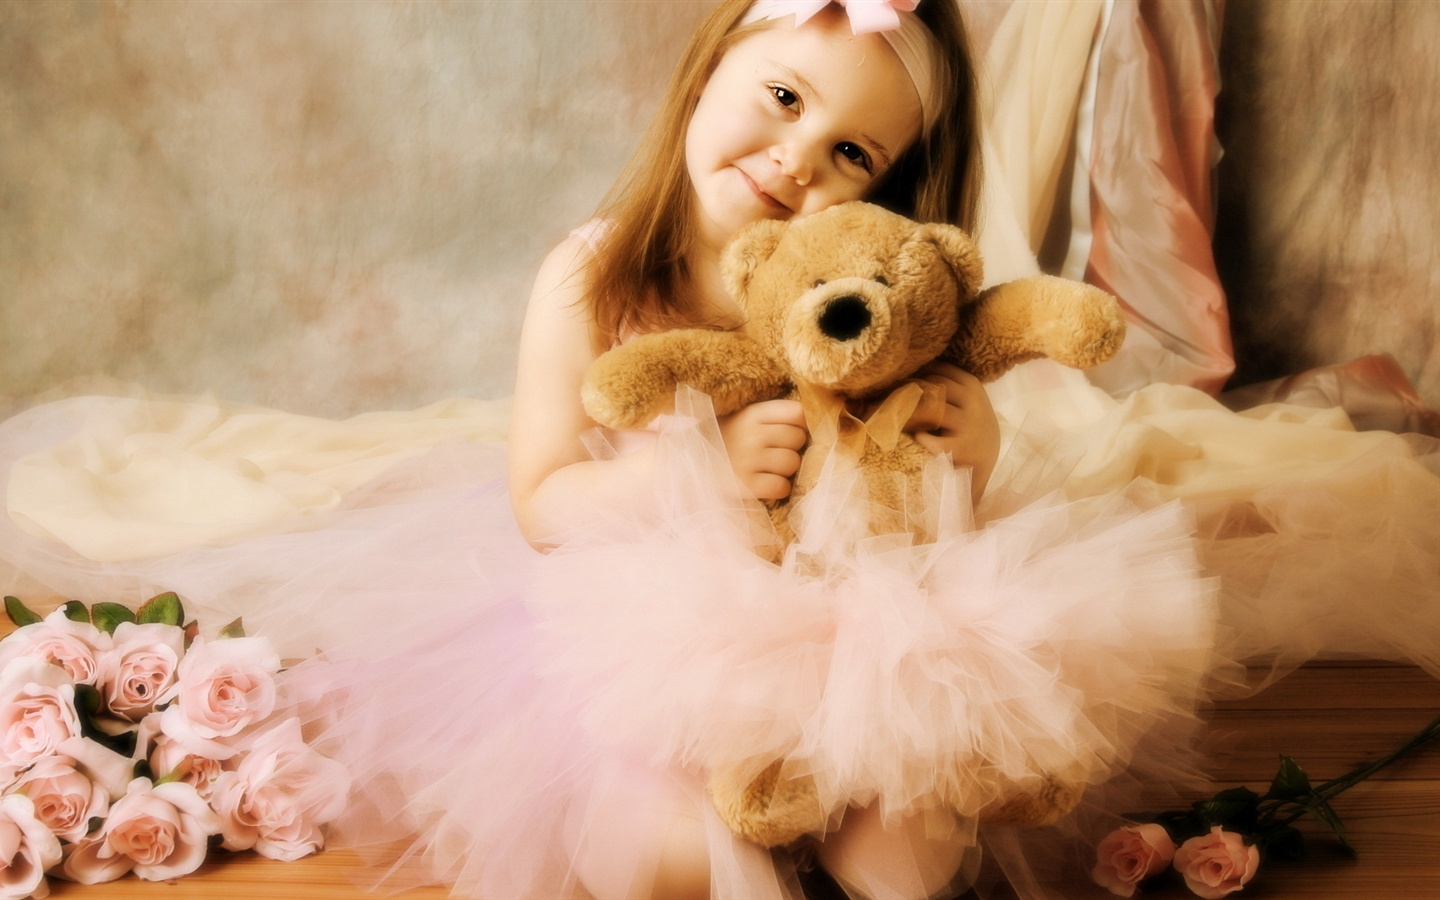 Cute girl with toy bear wallpaper - 1440x900